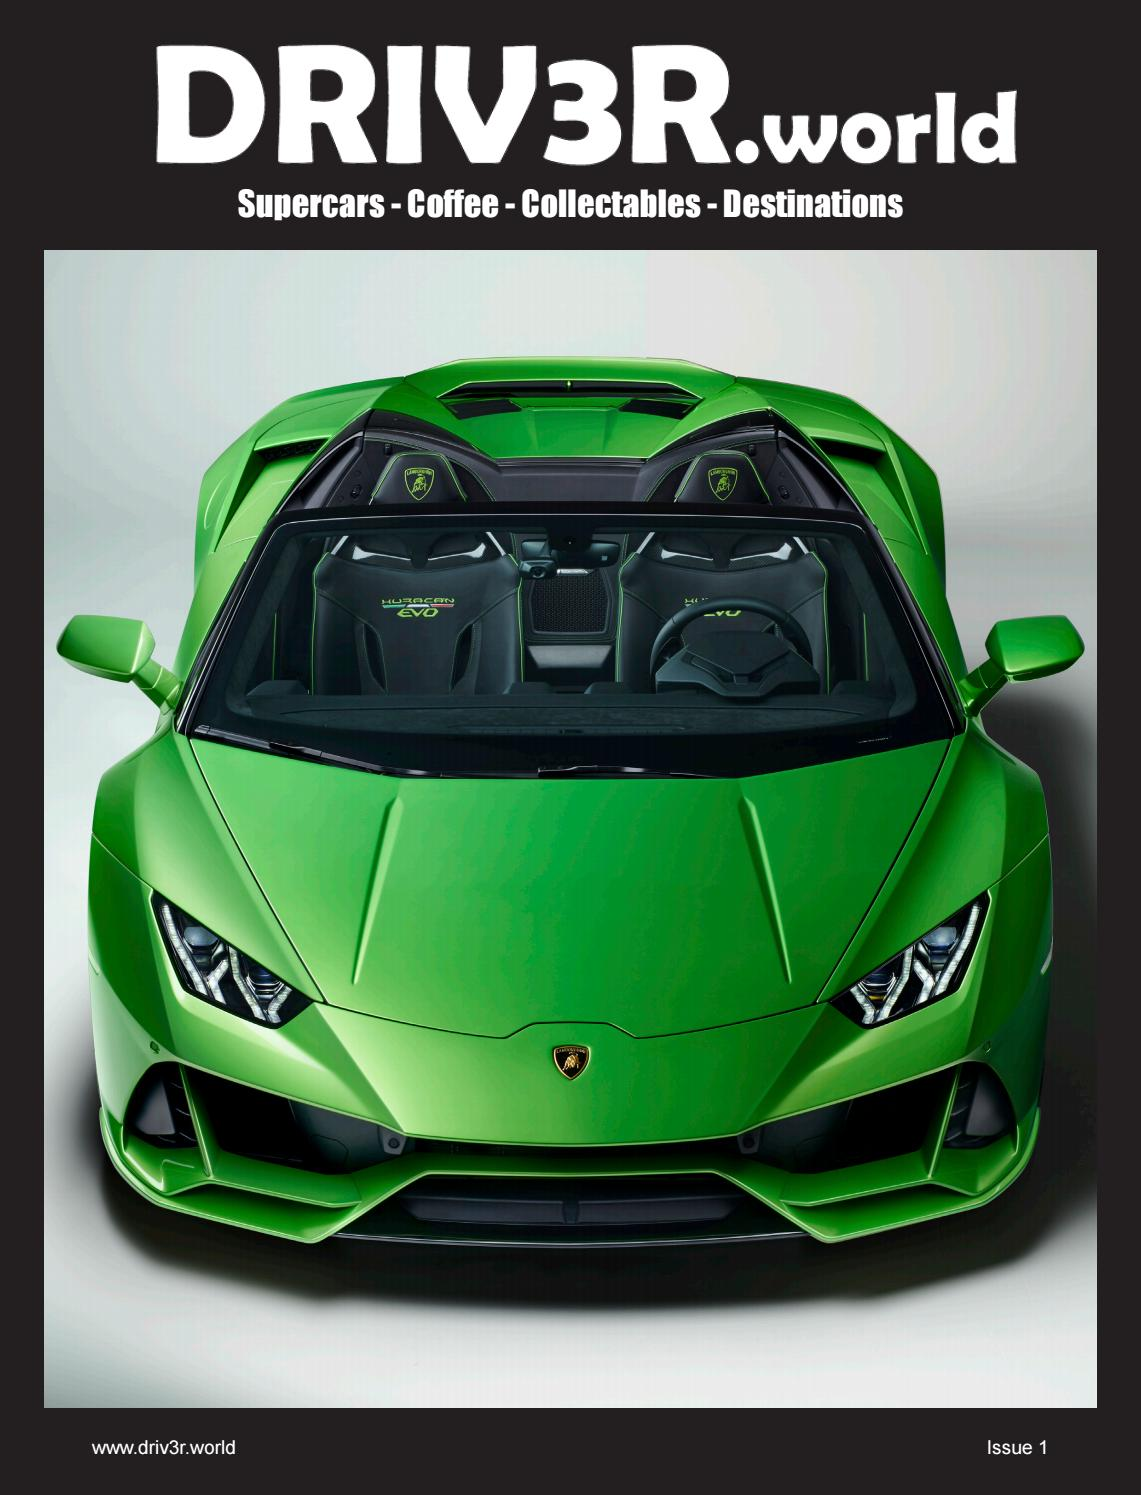 Driv3r World Supercar Magazine Issue 1 By Driv3r World Issuu